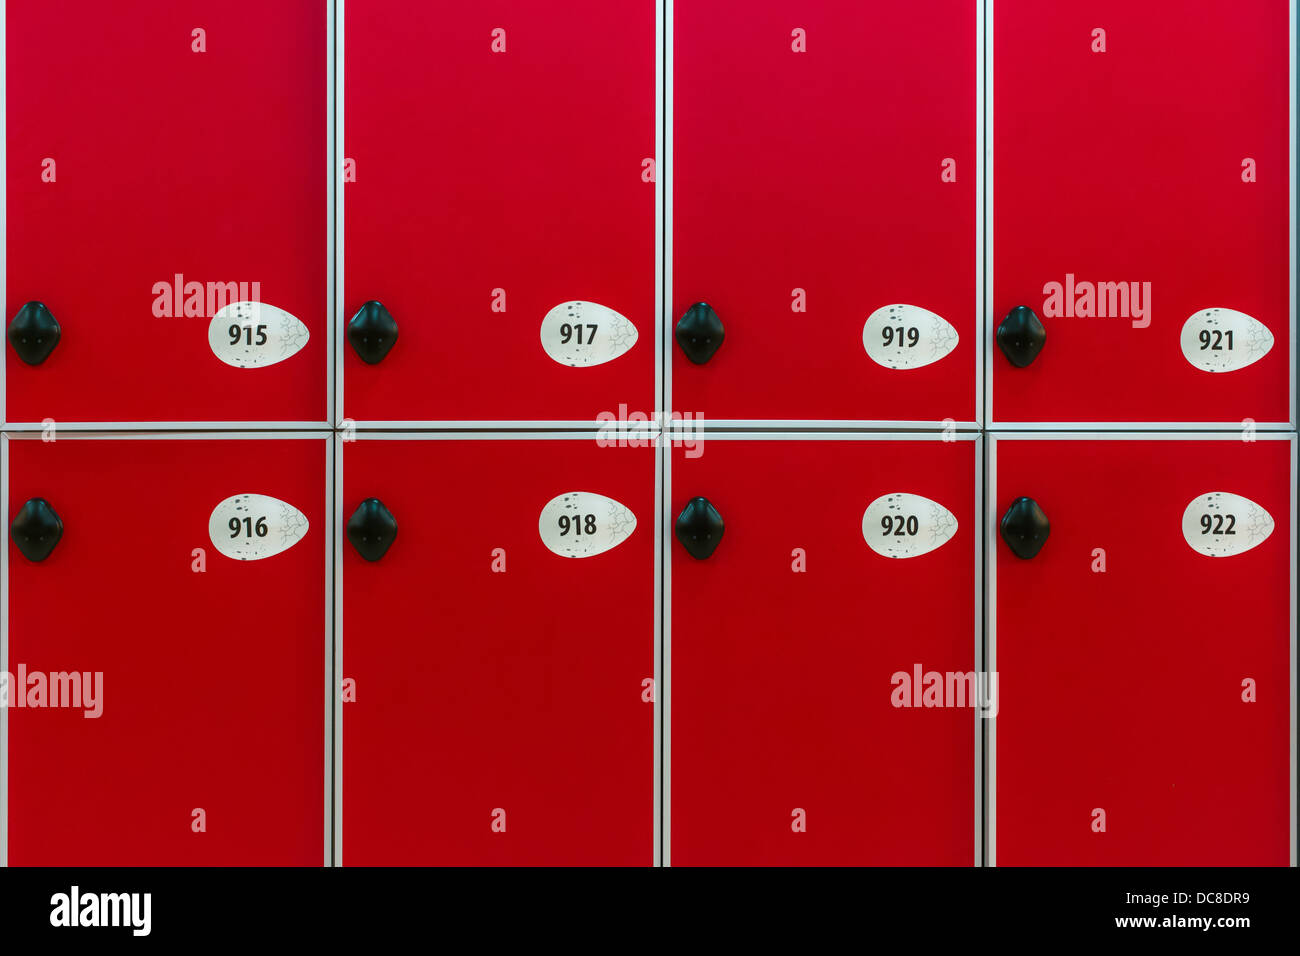 Red doors with numbers and locks in the locker room - Stock Image